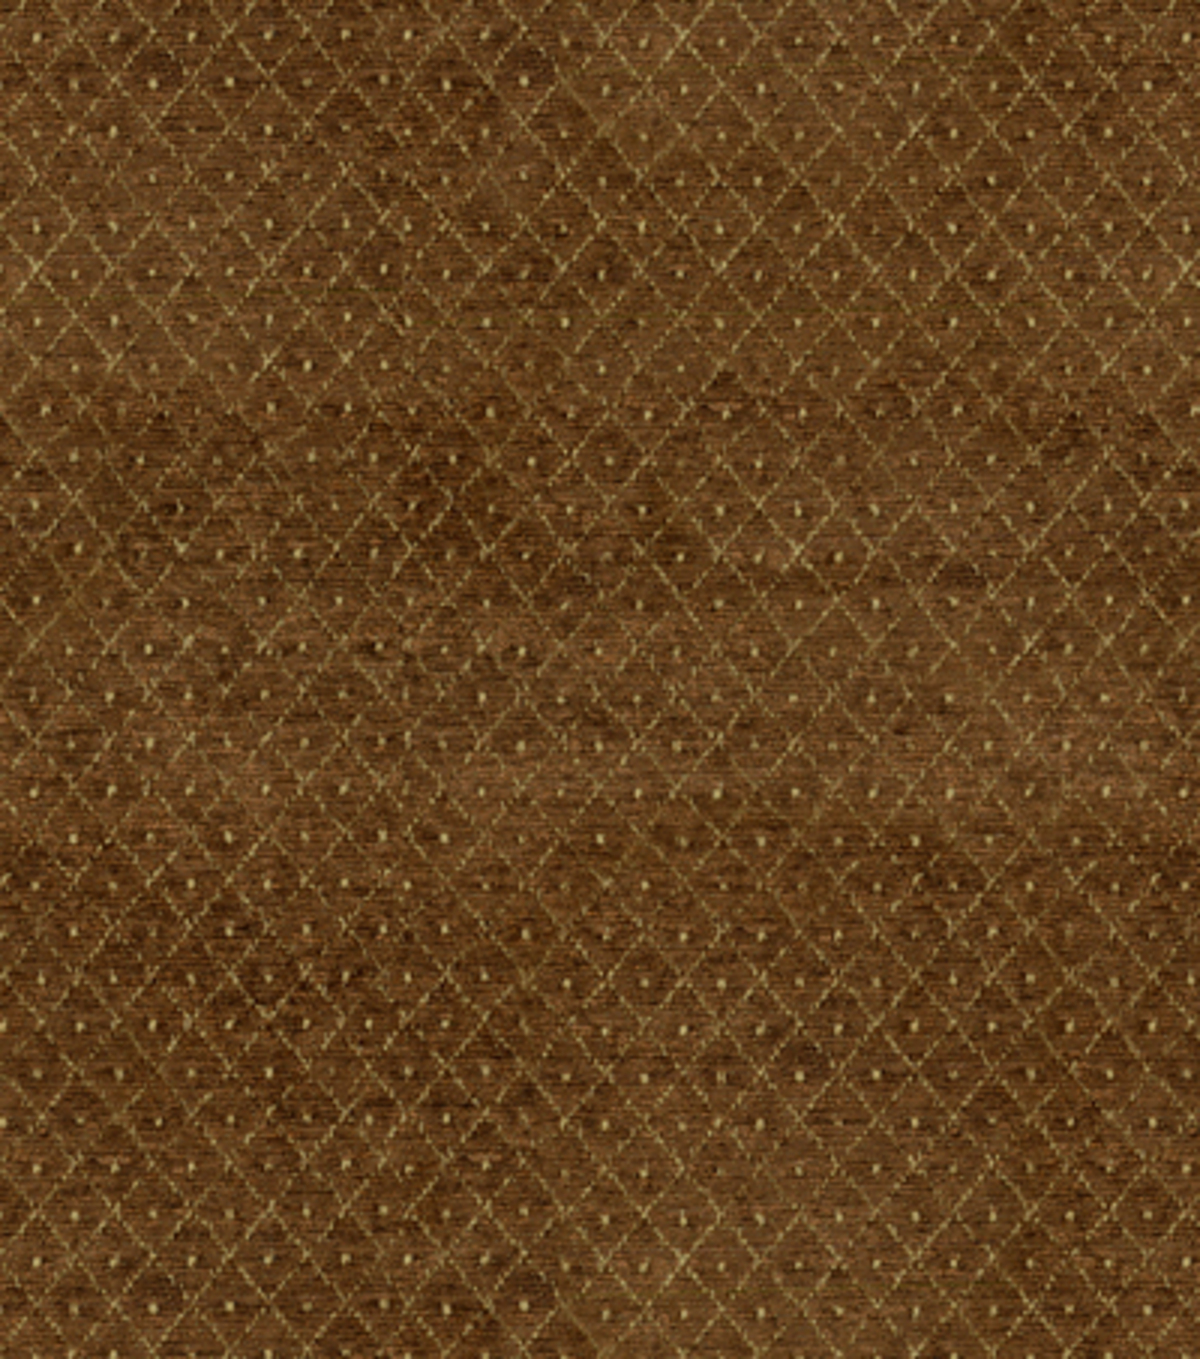 Waverly Multi-Purpose Decor Fabric 54\u0022-Connemara/Cattle